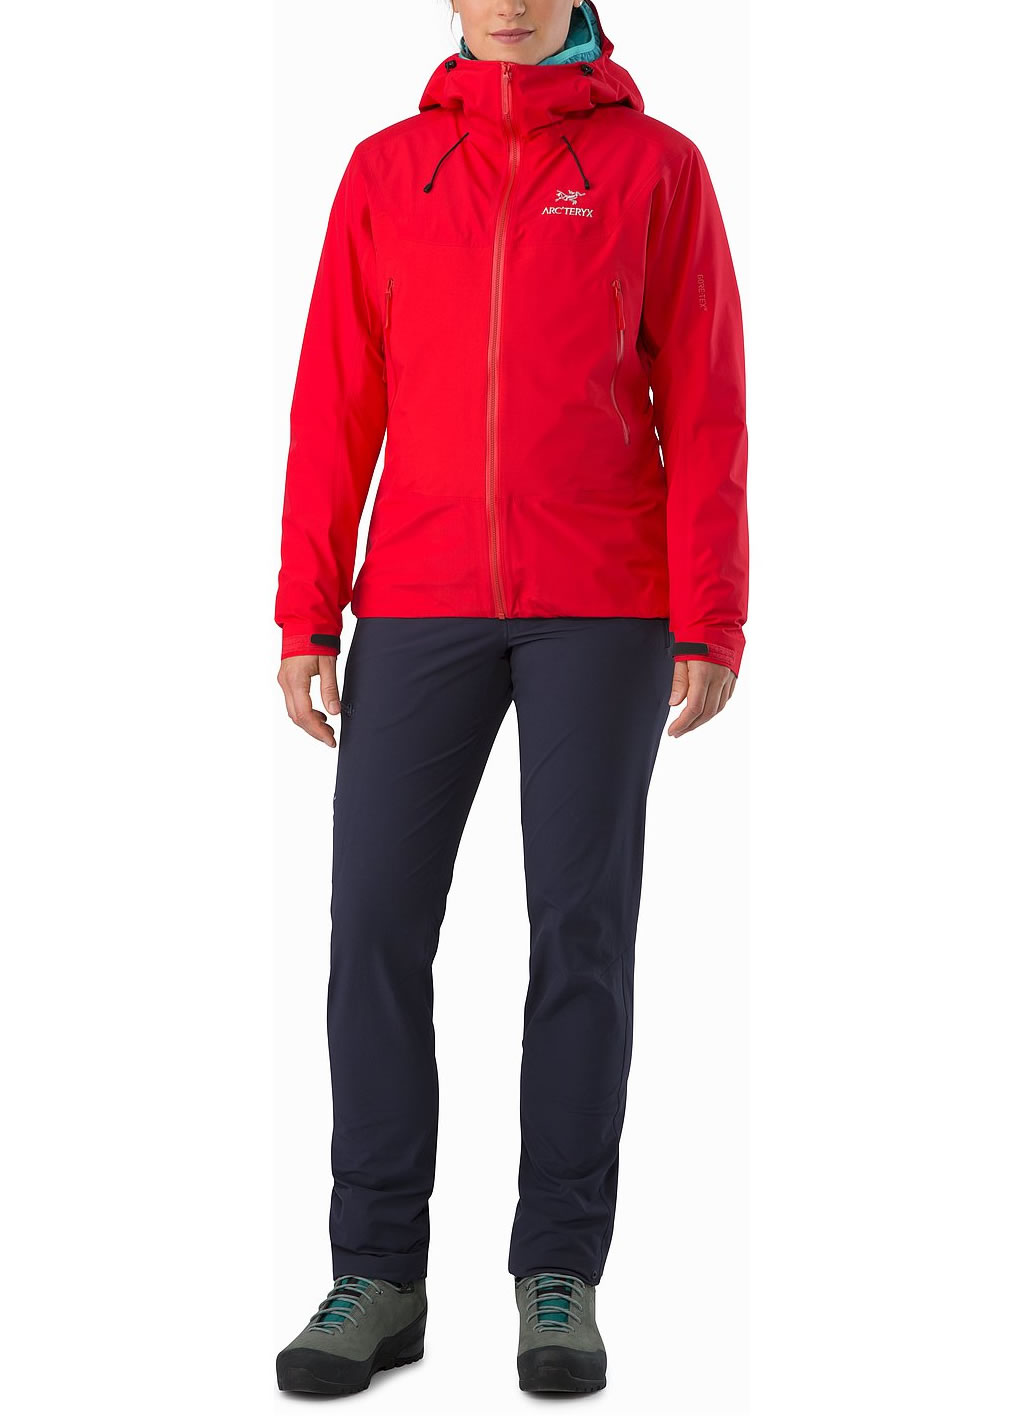 Red Women's Beta SL Hybrid Jacket by Arc'teryx